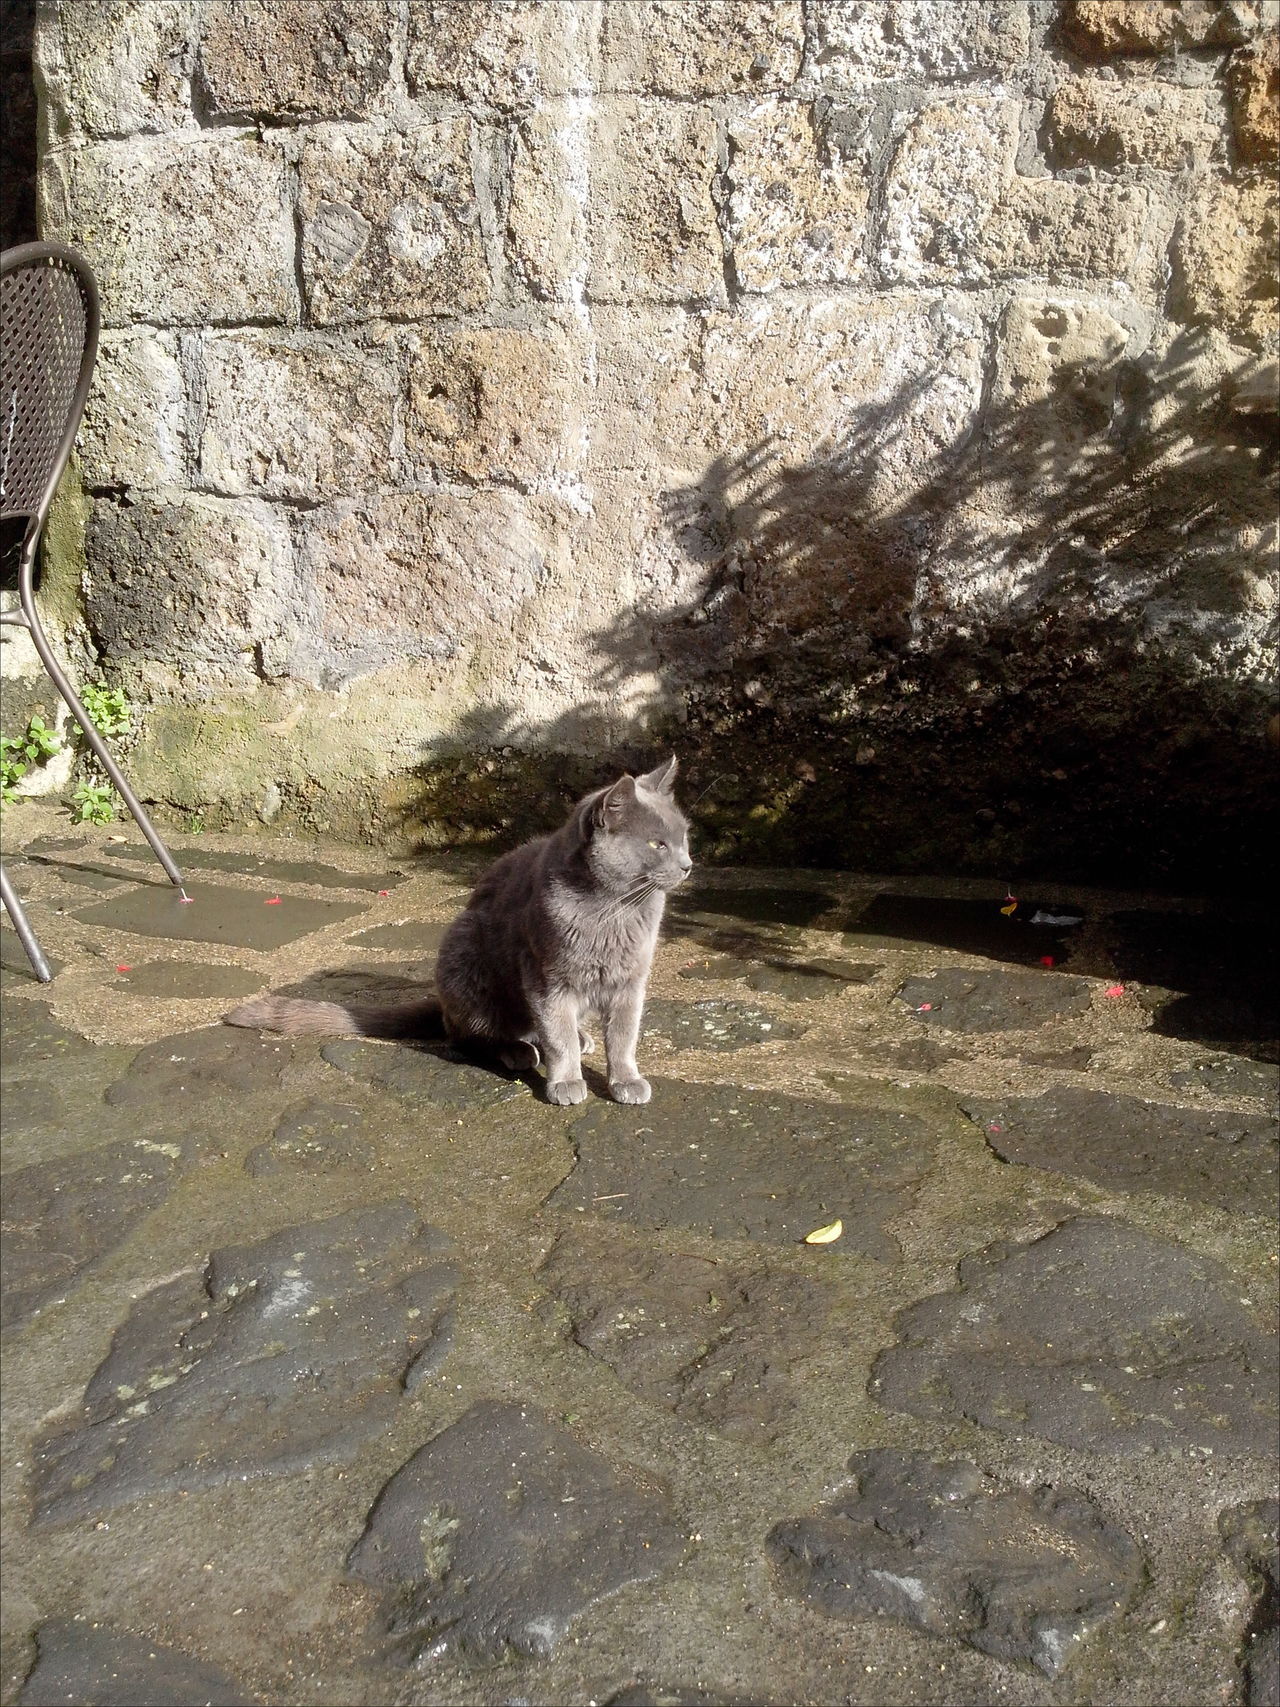 Check This Out Civita Di Bagnoregio Fur Furry Friends Grey Cat Looking For The Sunset Nature Pets Resting Time The City That Is Dying Tuff Tufo